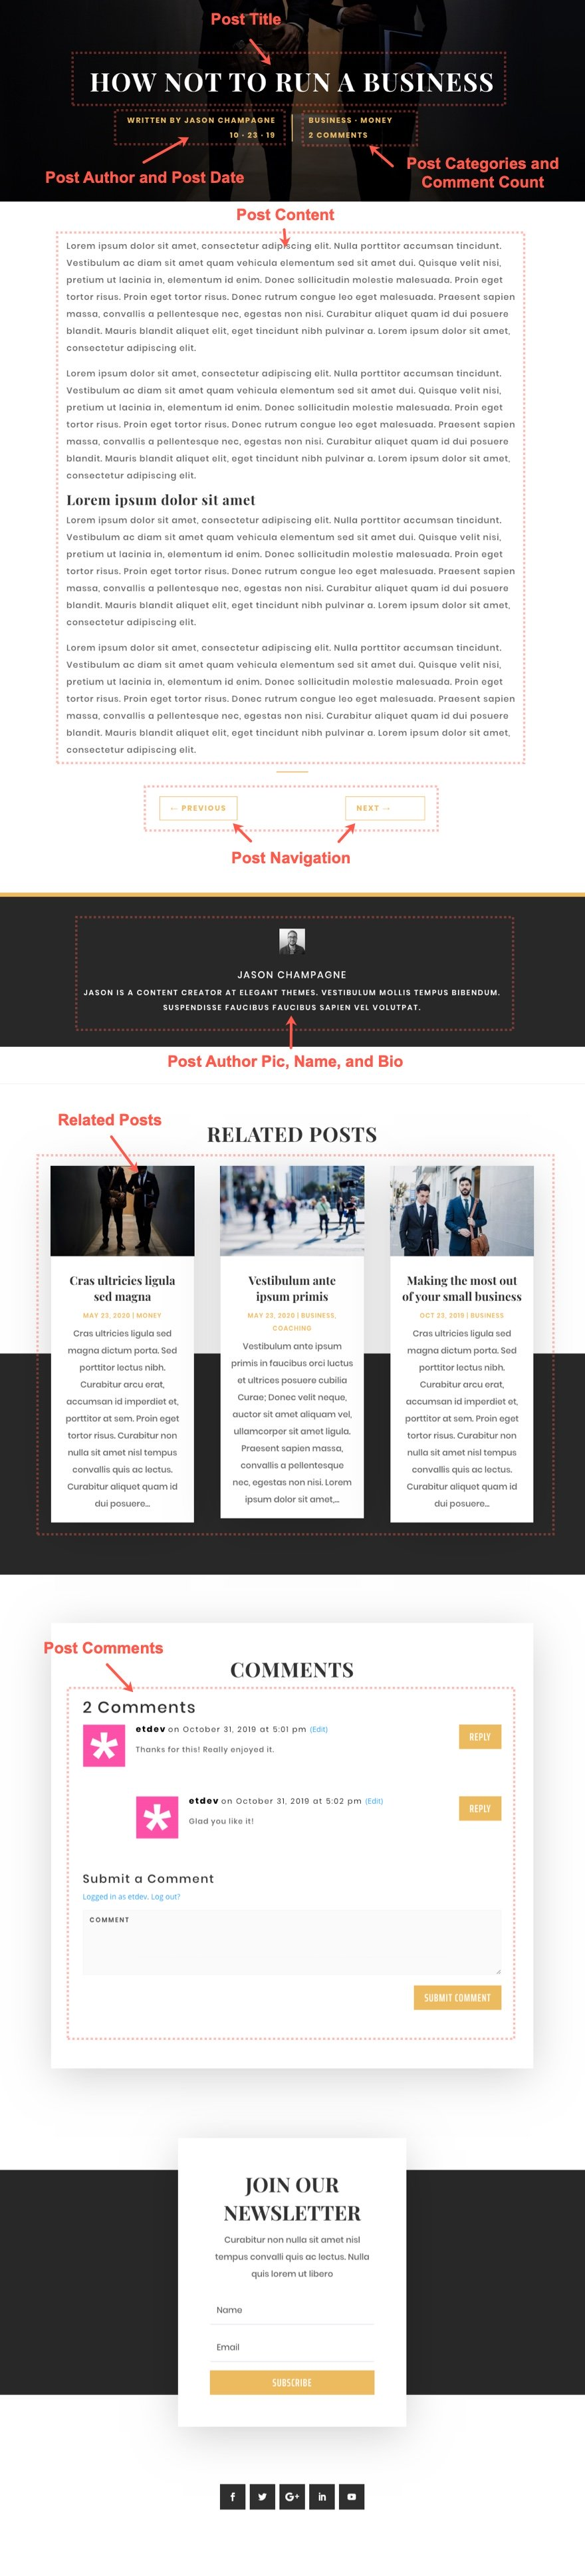 get-a-free-blog-post-template-for-divis-business-consultant-layout-pack-7 Get a FREE Blog Post Template for Divi's Business Consultant Layout Pack